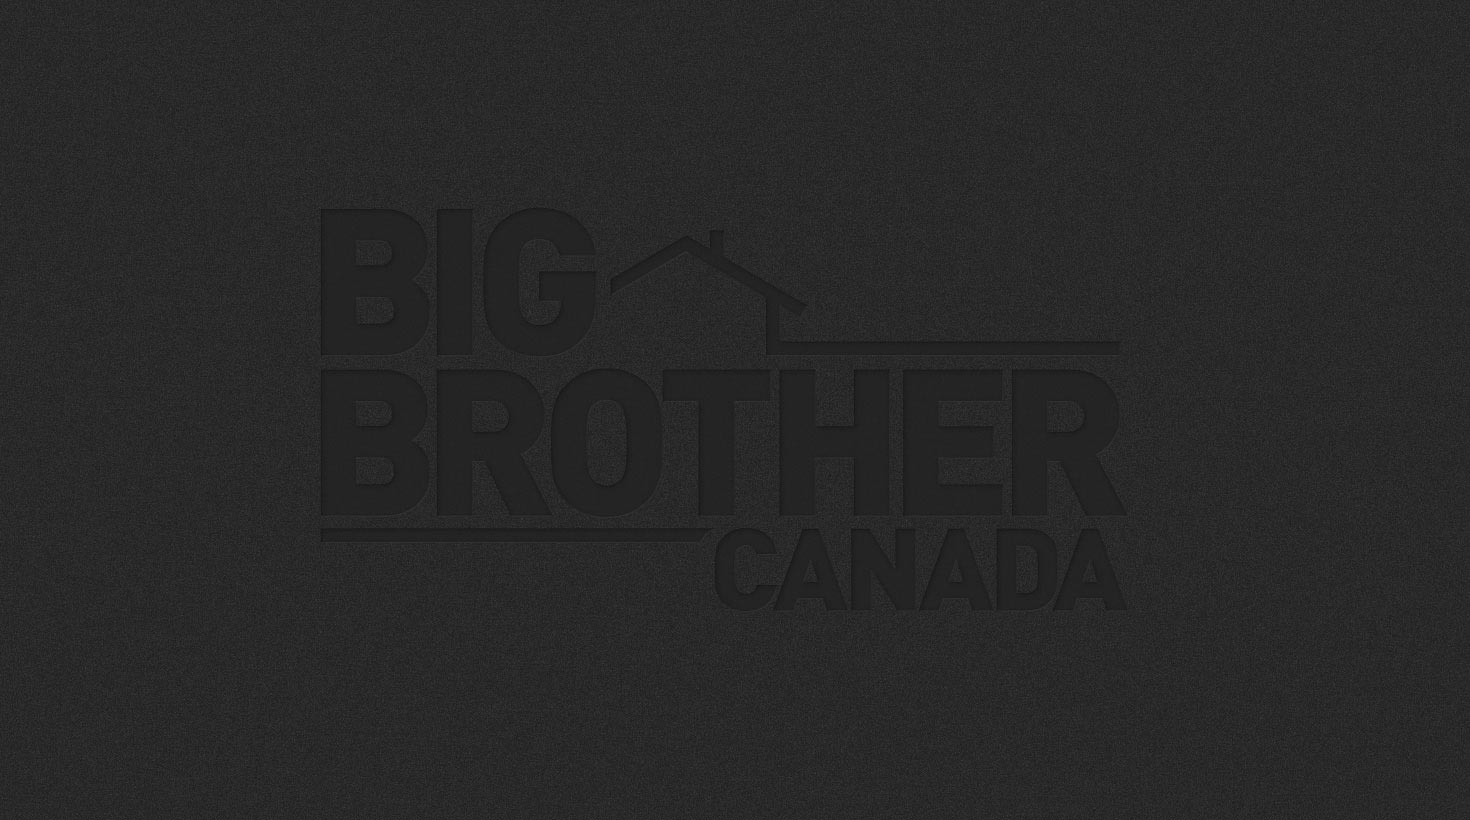 Big Brother According to Anthony